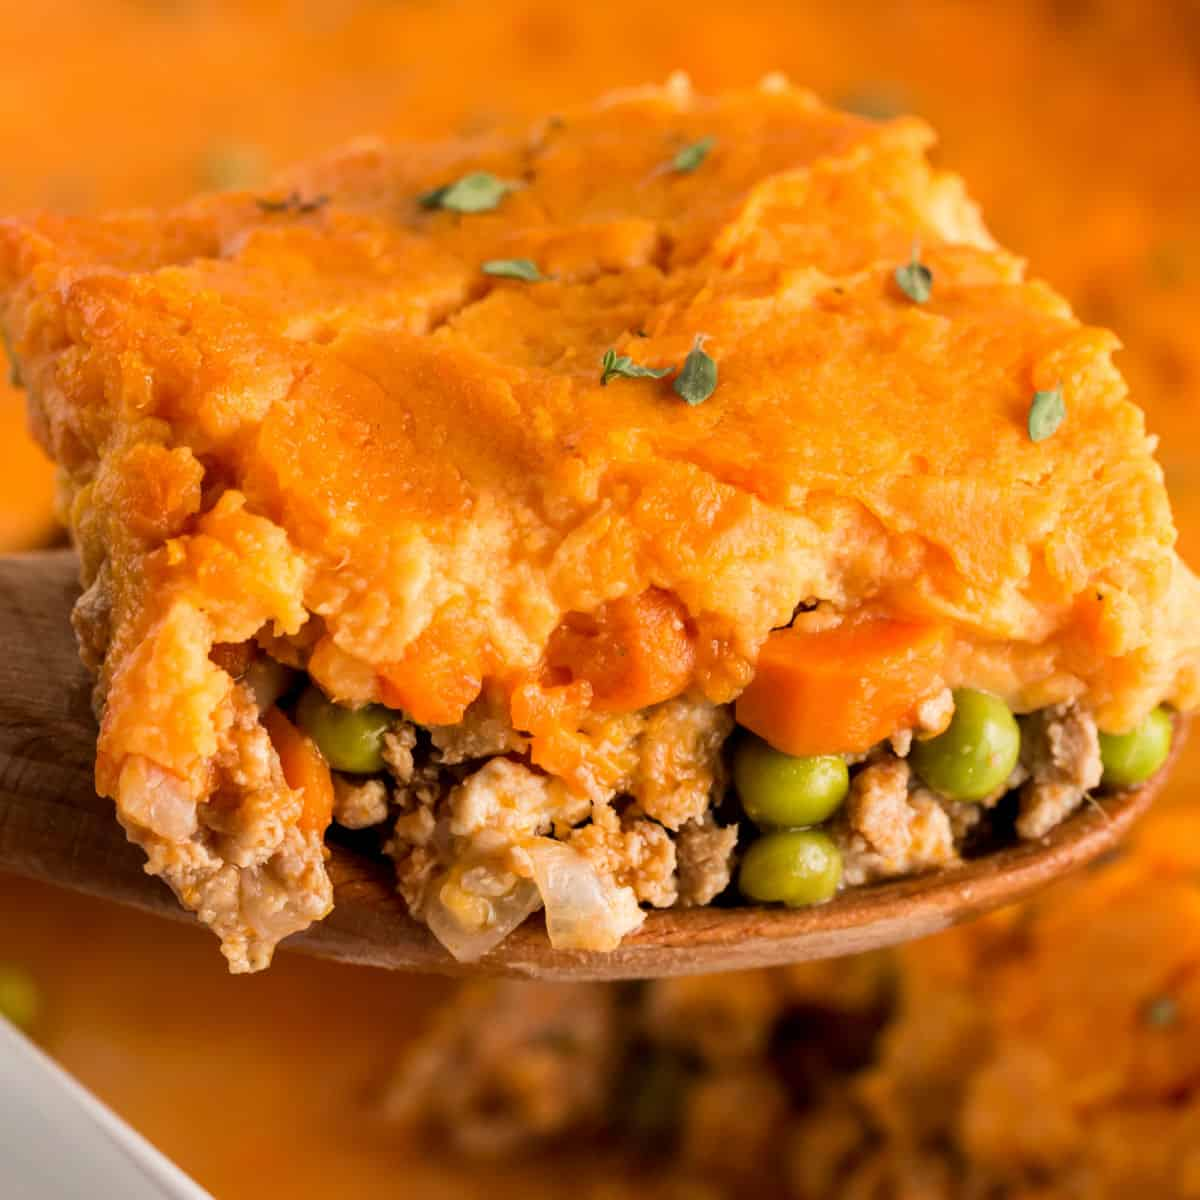 square image of portion of Turkey & Sweet Potato Shepherd's Pie on a wooden spatula